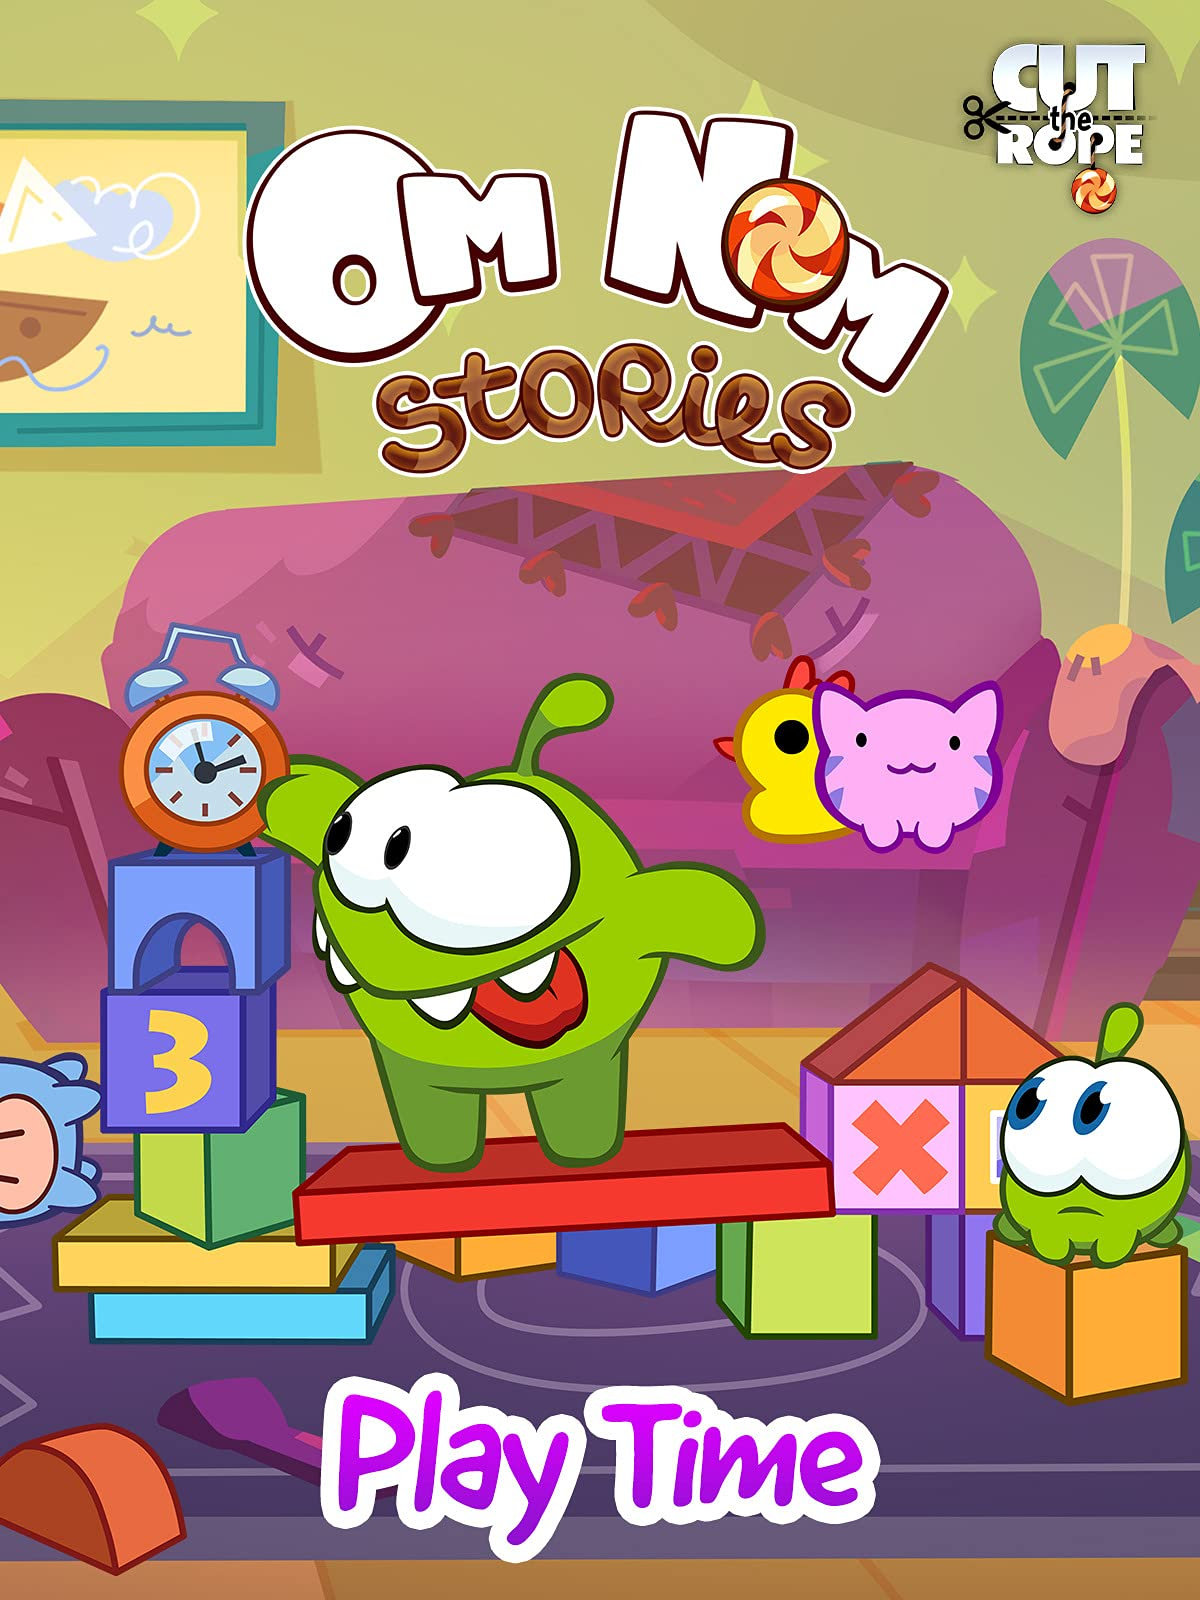 Cut The Rope: Om Nom Stories - Play Time